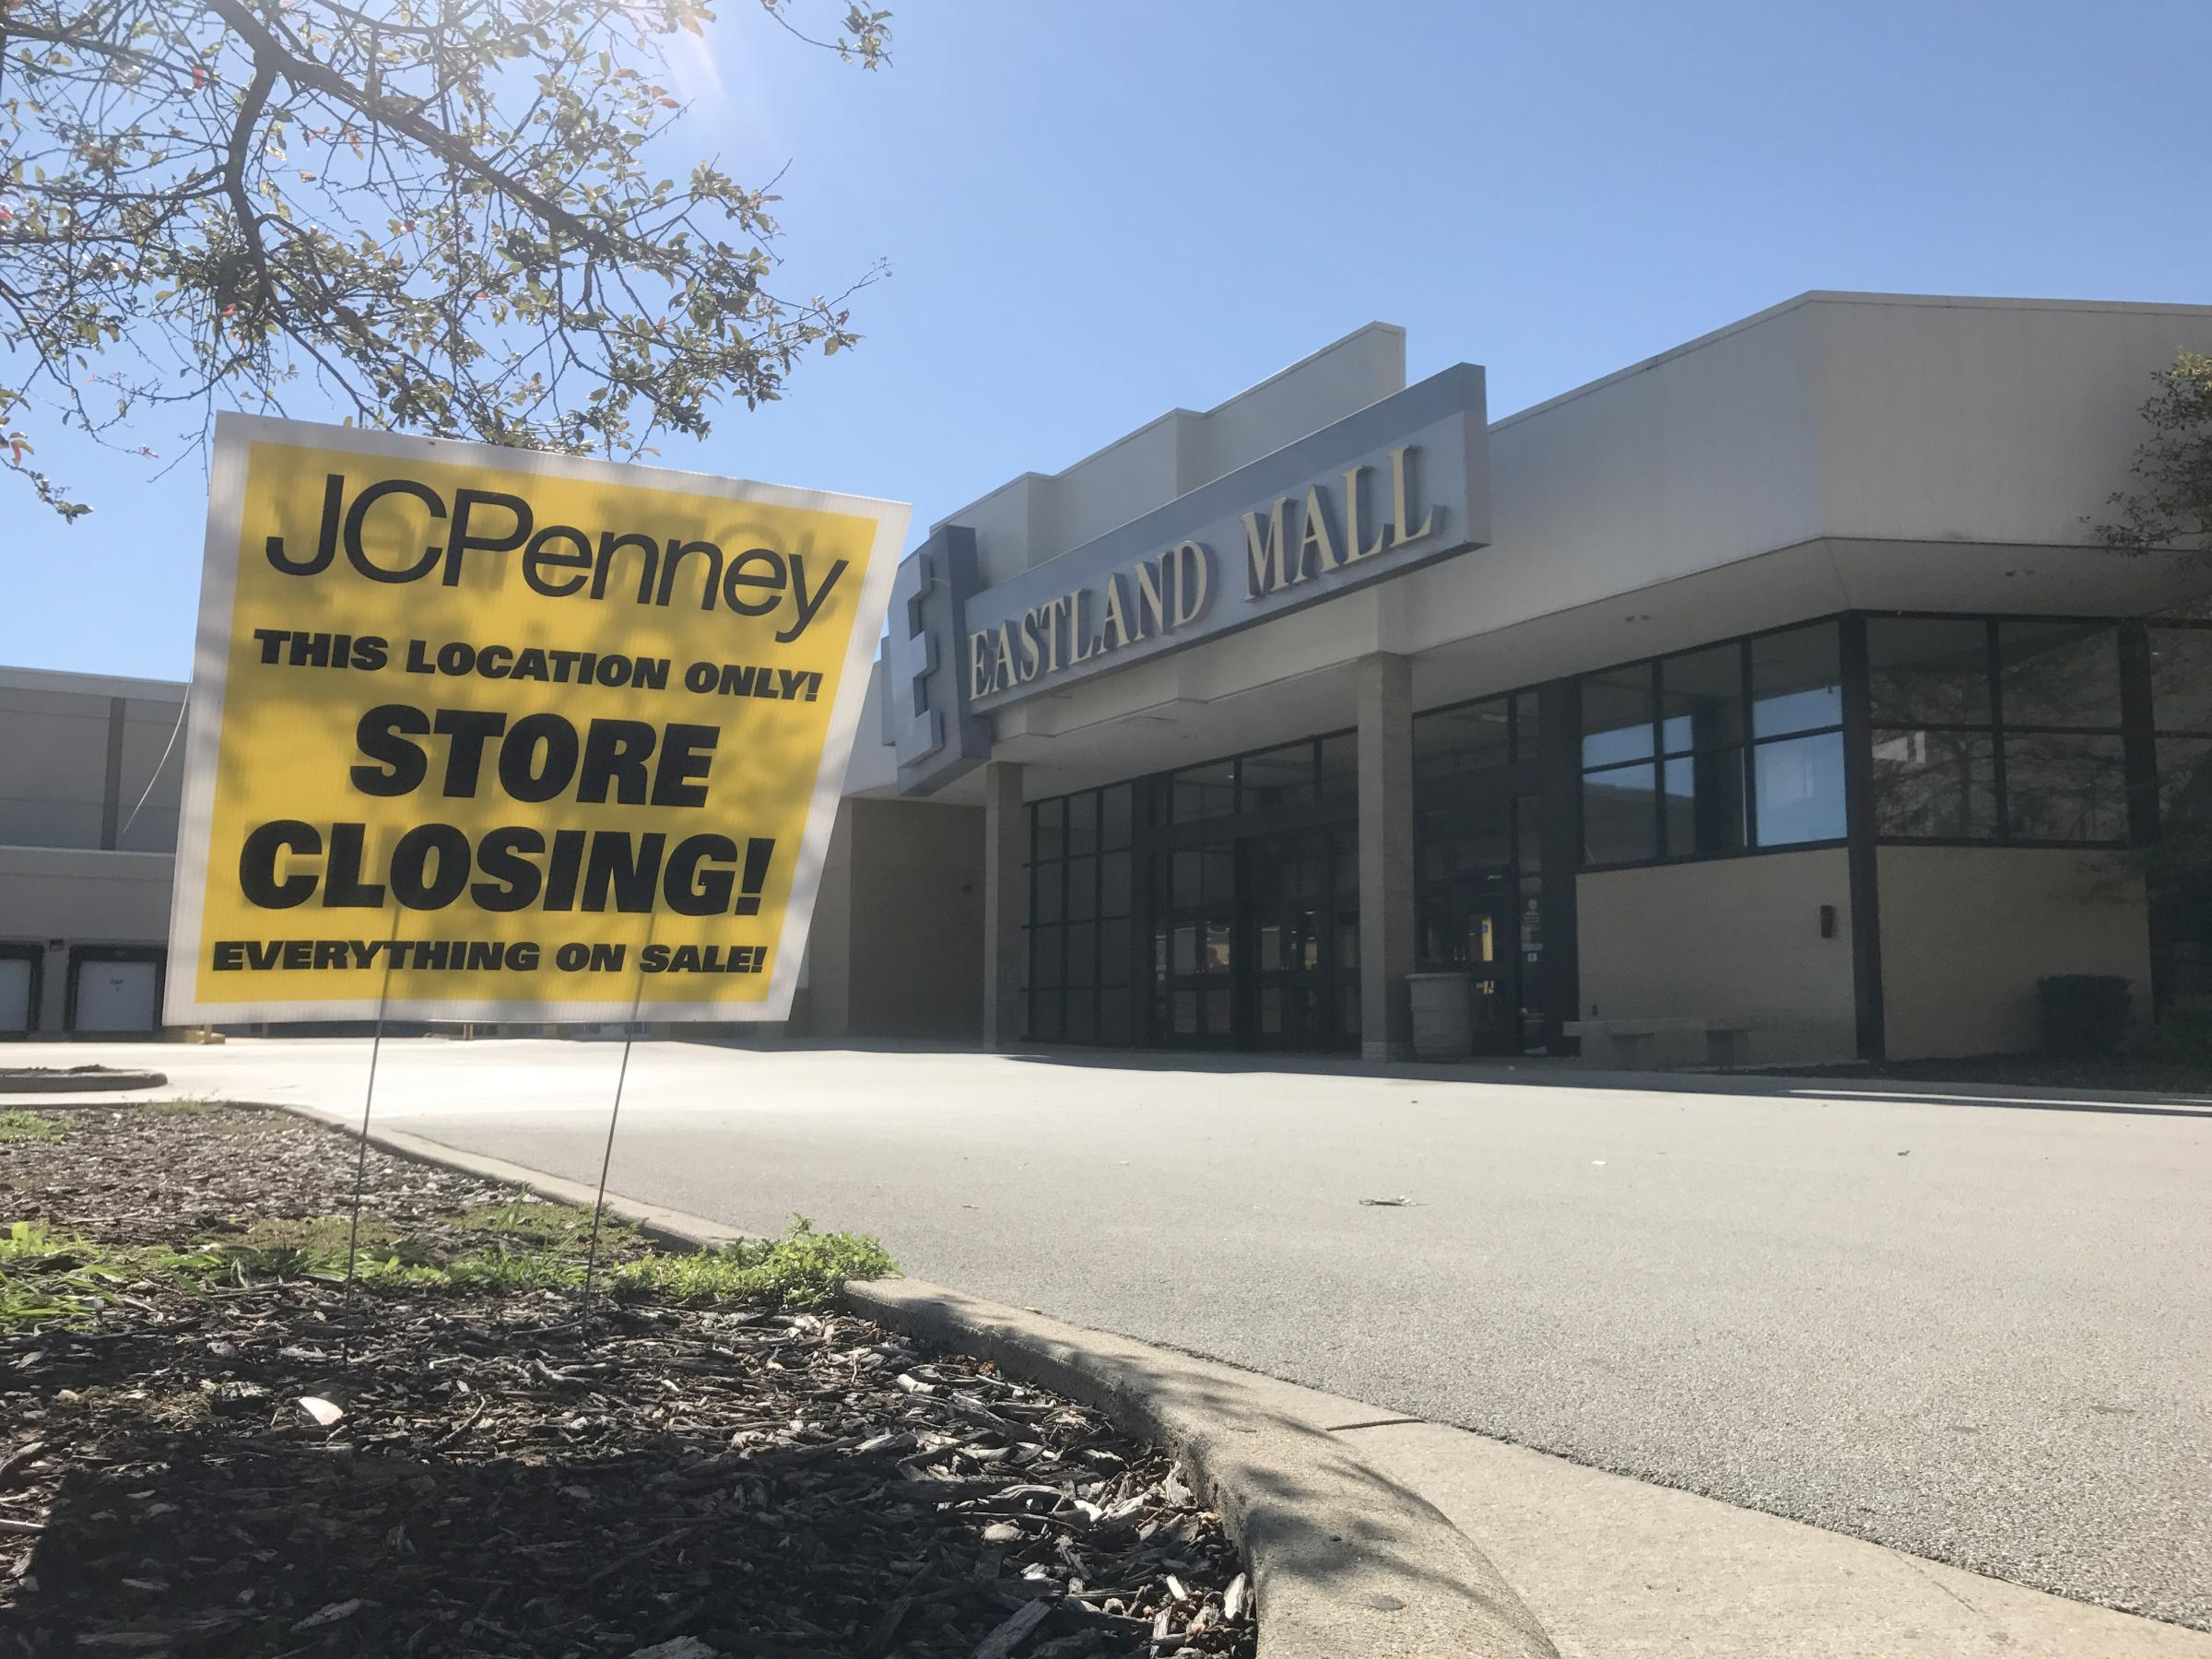 71 rows· Mall Directory for the home to all of your favorite stores like American Eagle Outfitters, .